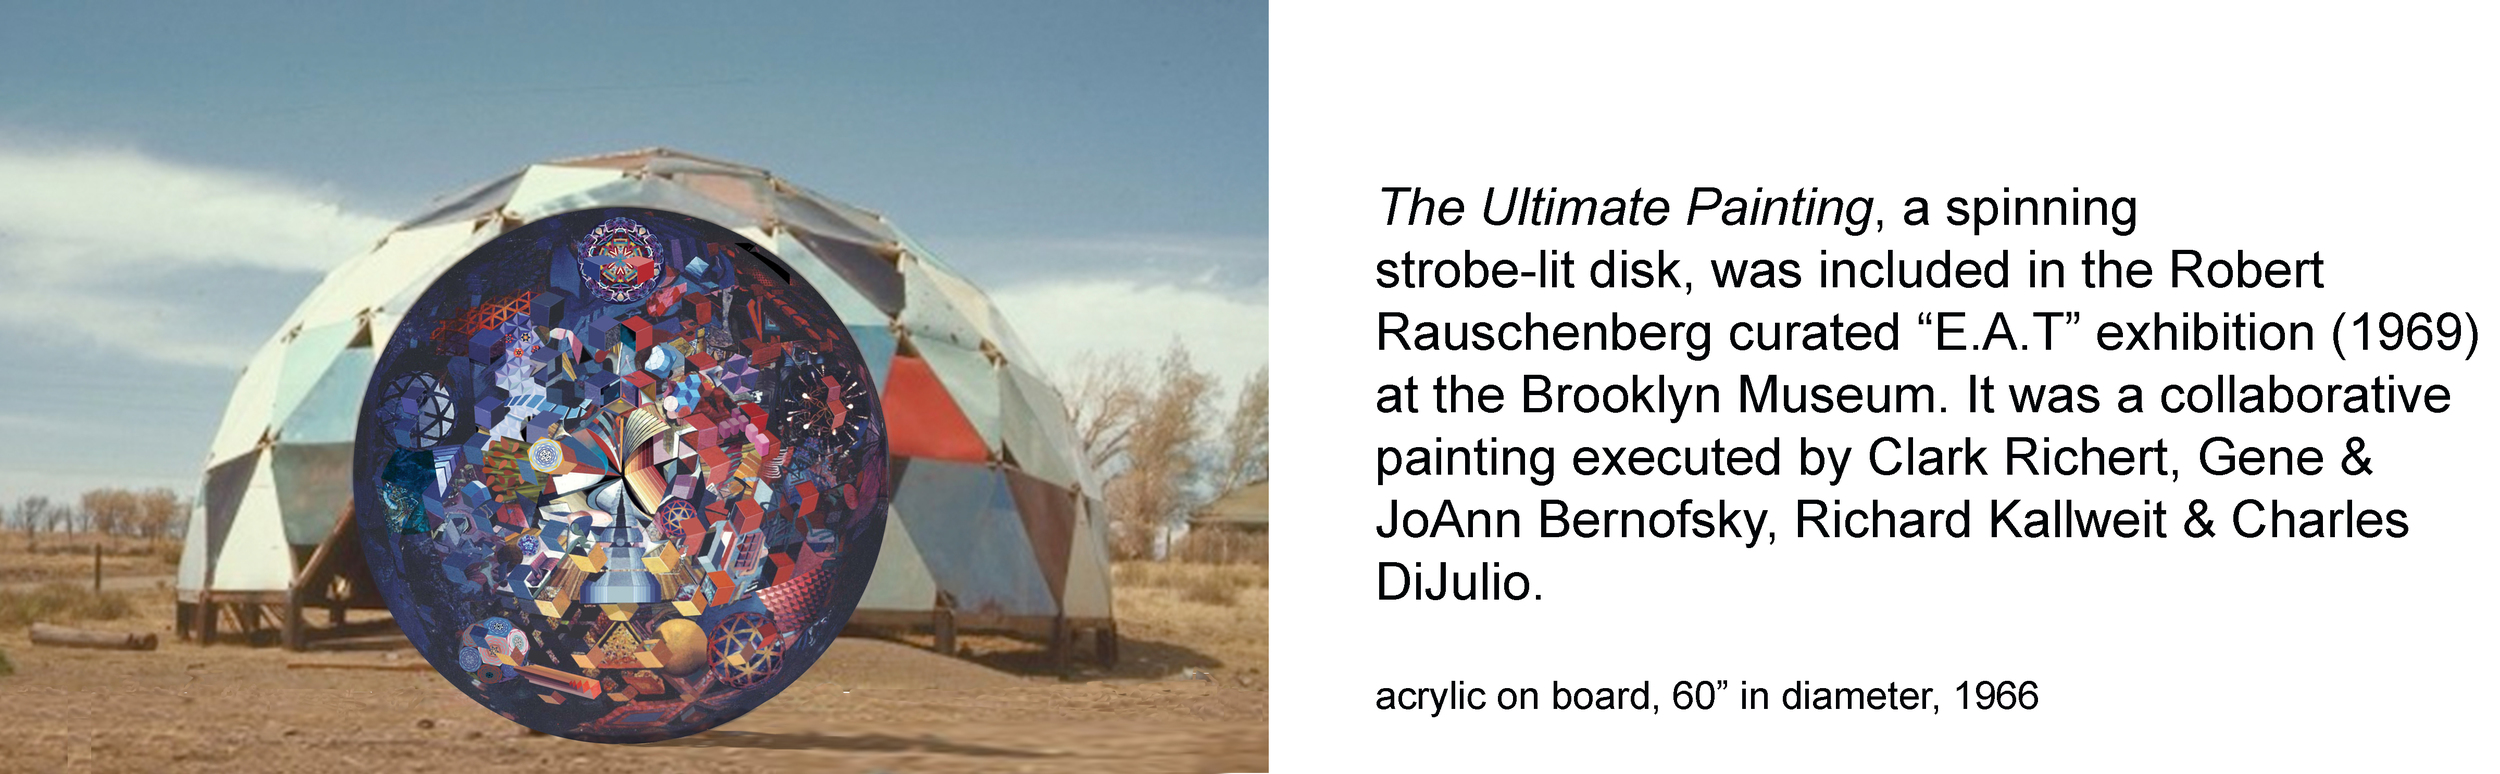 ultimate-painting-1966-in-front-of-theatre-dome-at-drop-city-tiff-545x272-1 copy.jpg